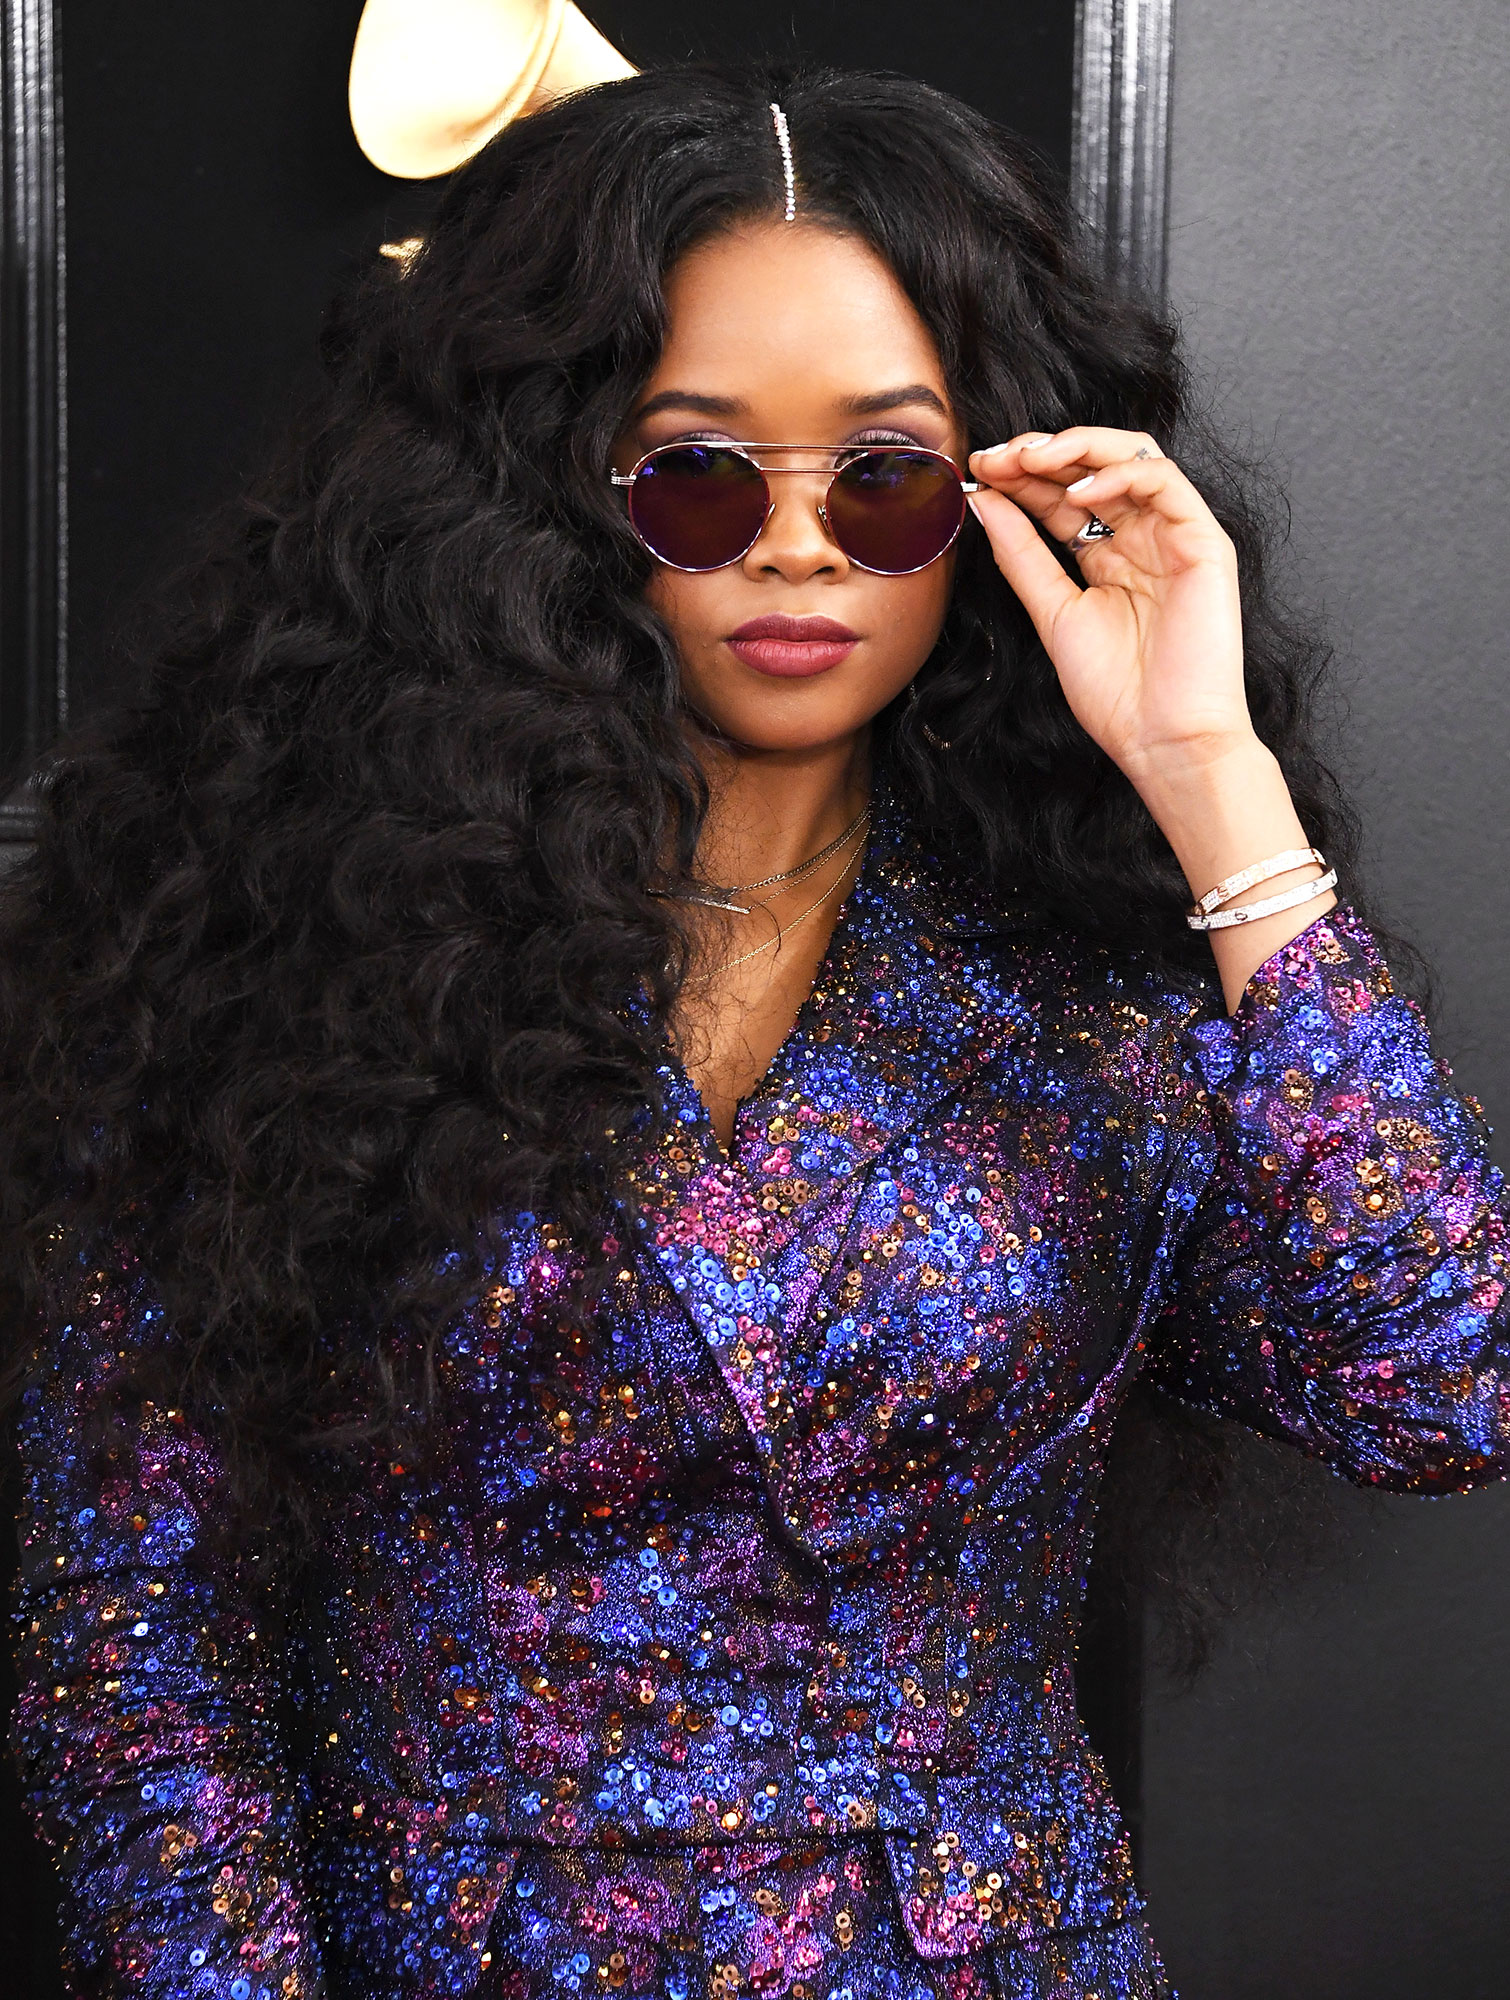 grammys 2019 H.E.R. - H.E.R. arrives at the 61st Annual GRAMMY Awards at Staples Center on February 10, 2019 in Los Angeles, California.